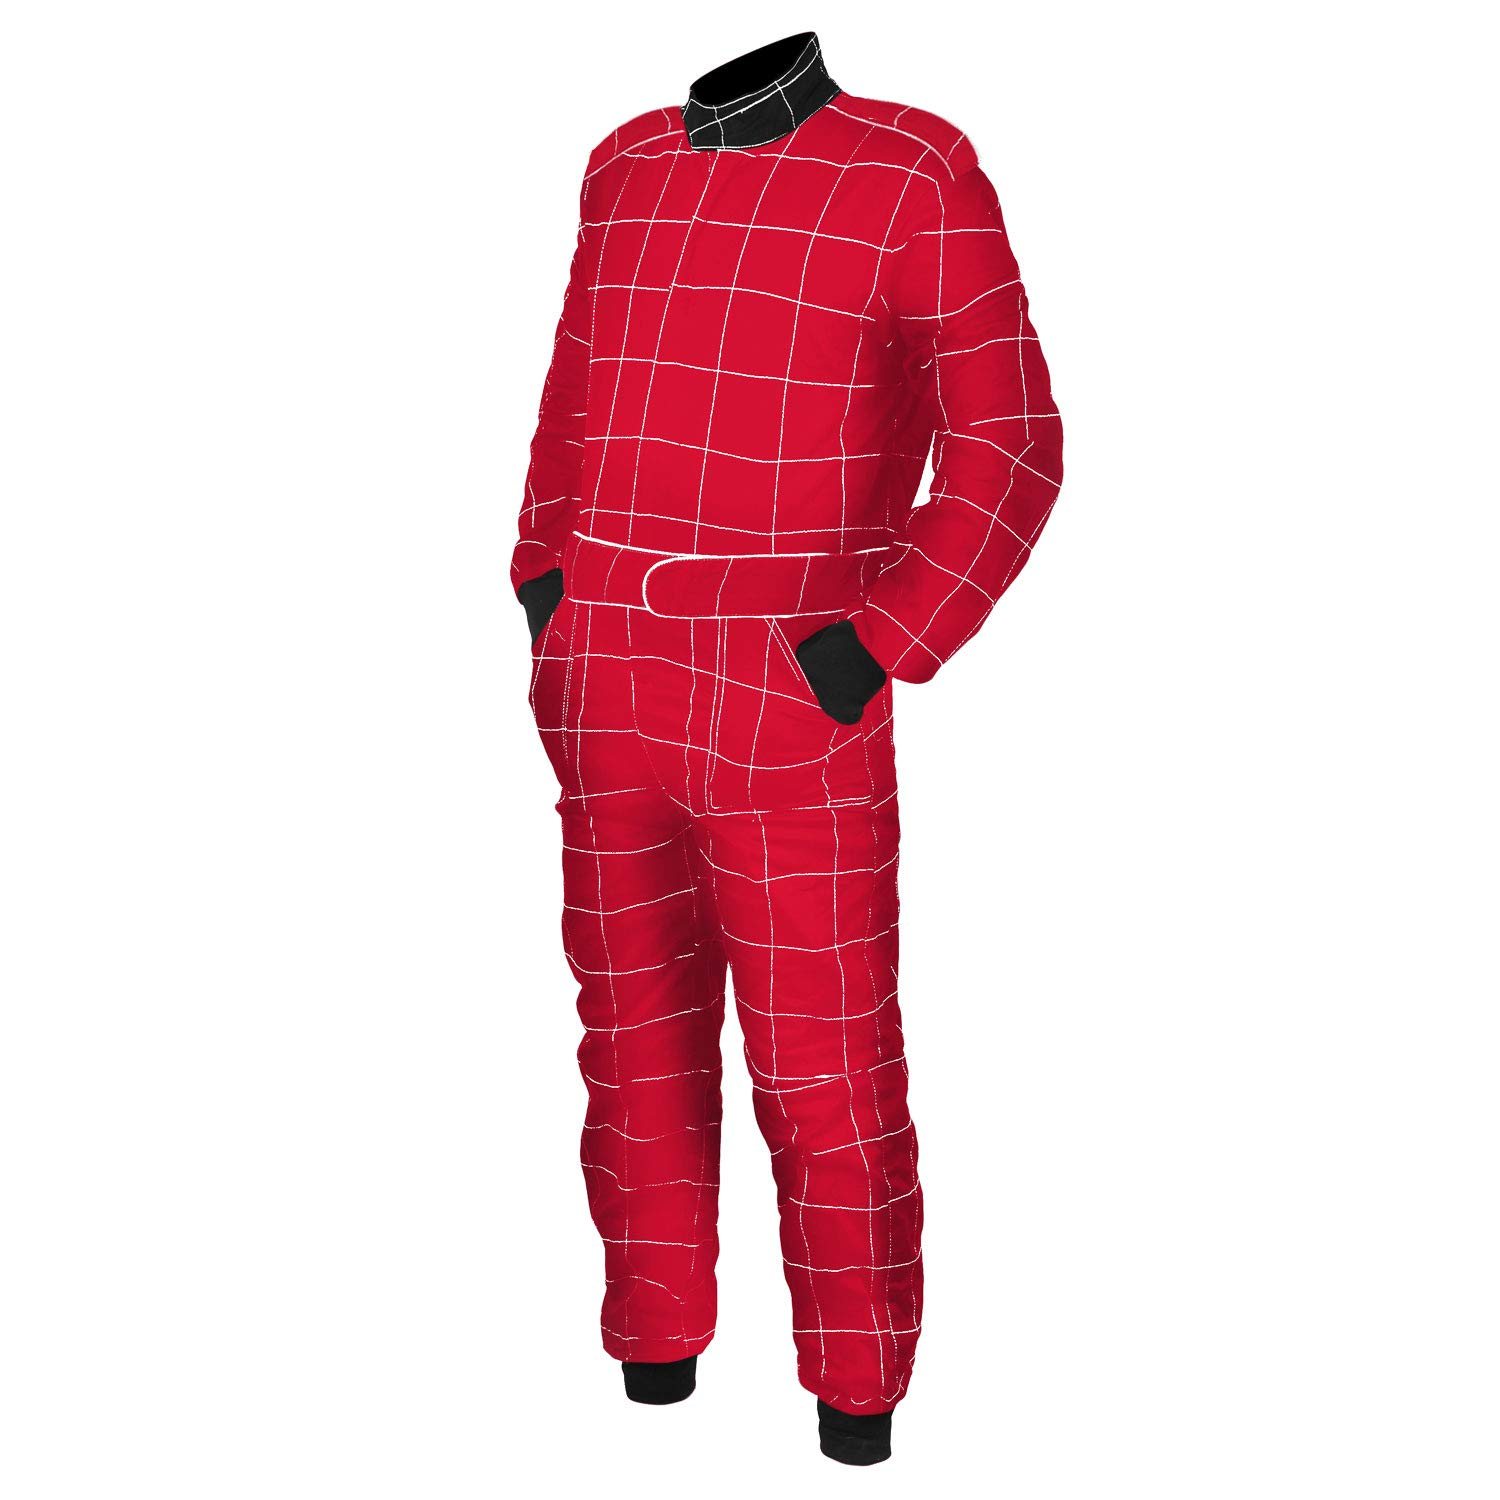 Sparx Sports Go Kart Racing Cart Karting Suit Red